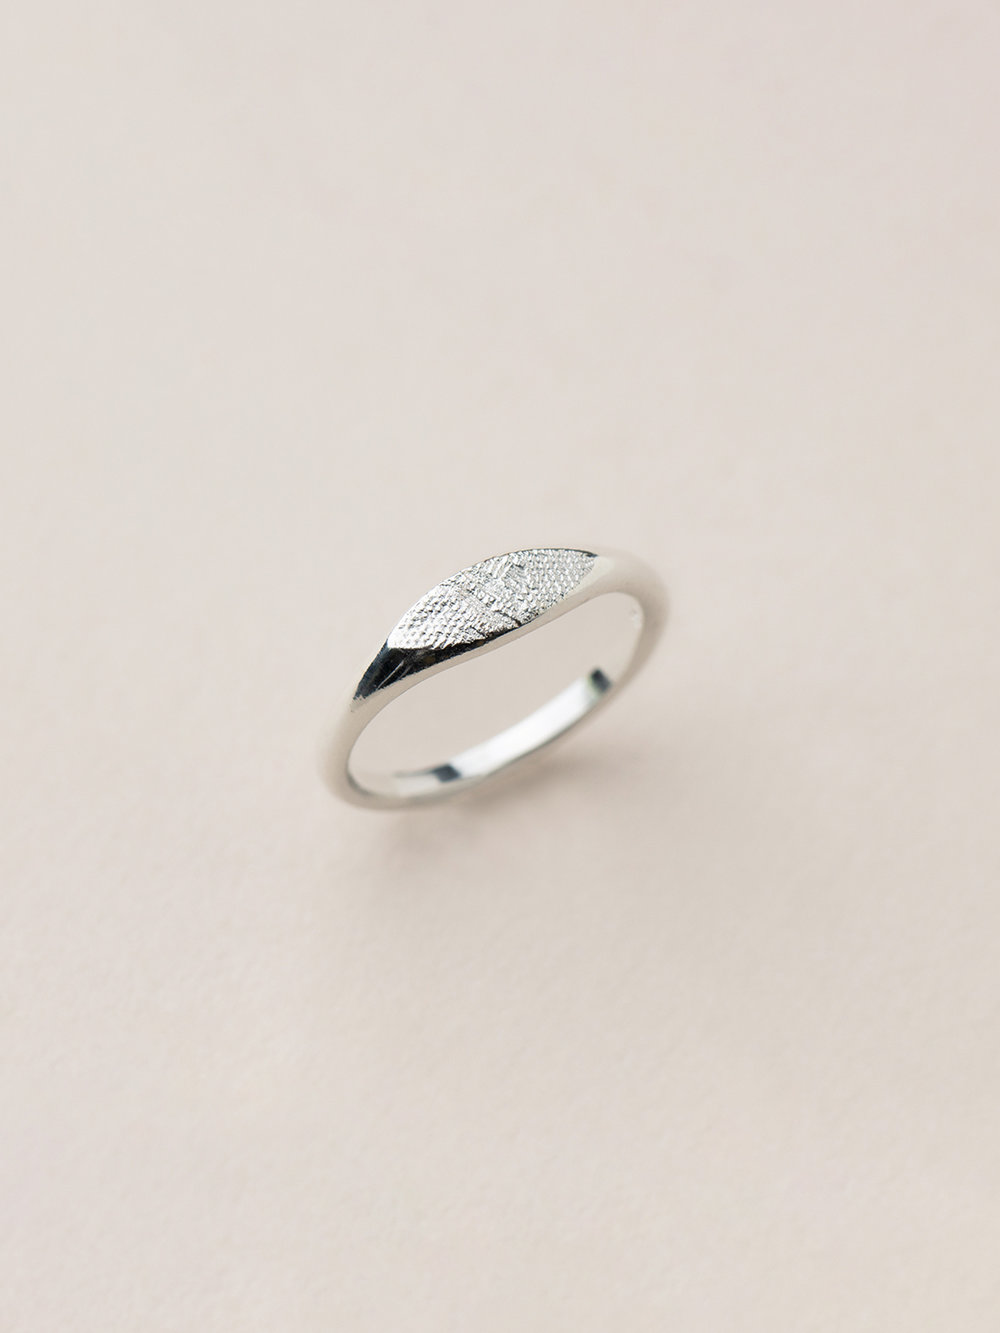 Schmaler Amia Ring in 925 Silber  Signet ring, small Amia in sterling silver